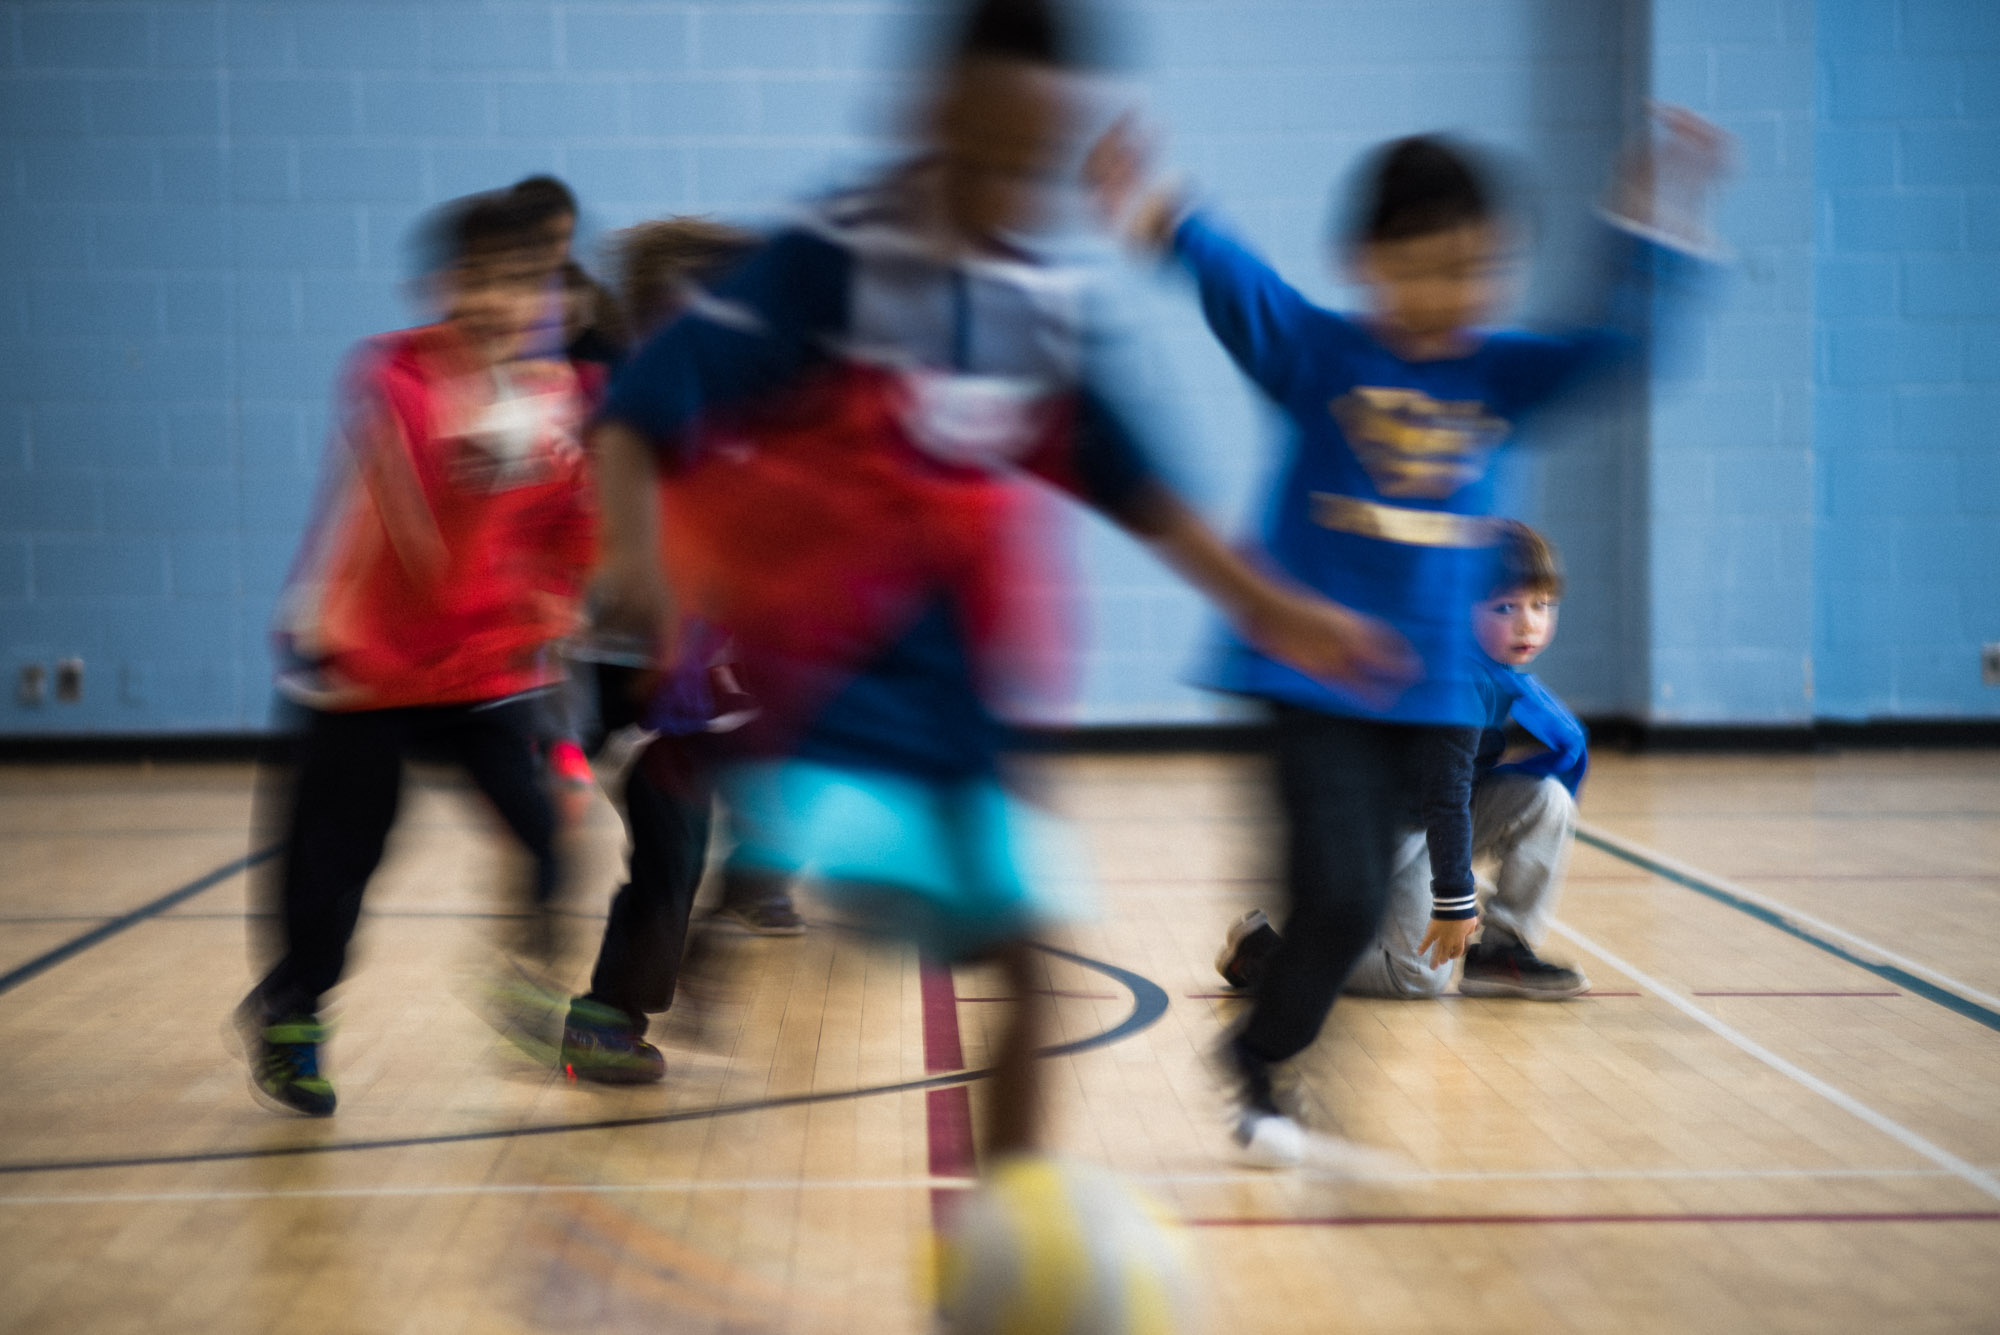 blur of children playing soccer with blue tones